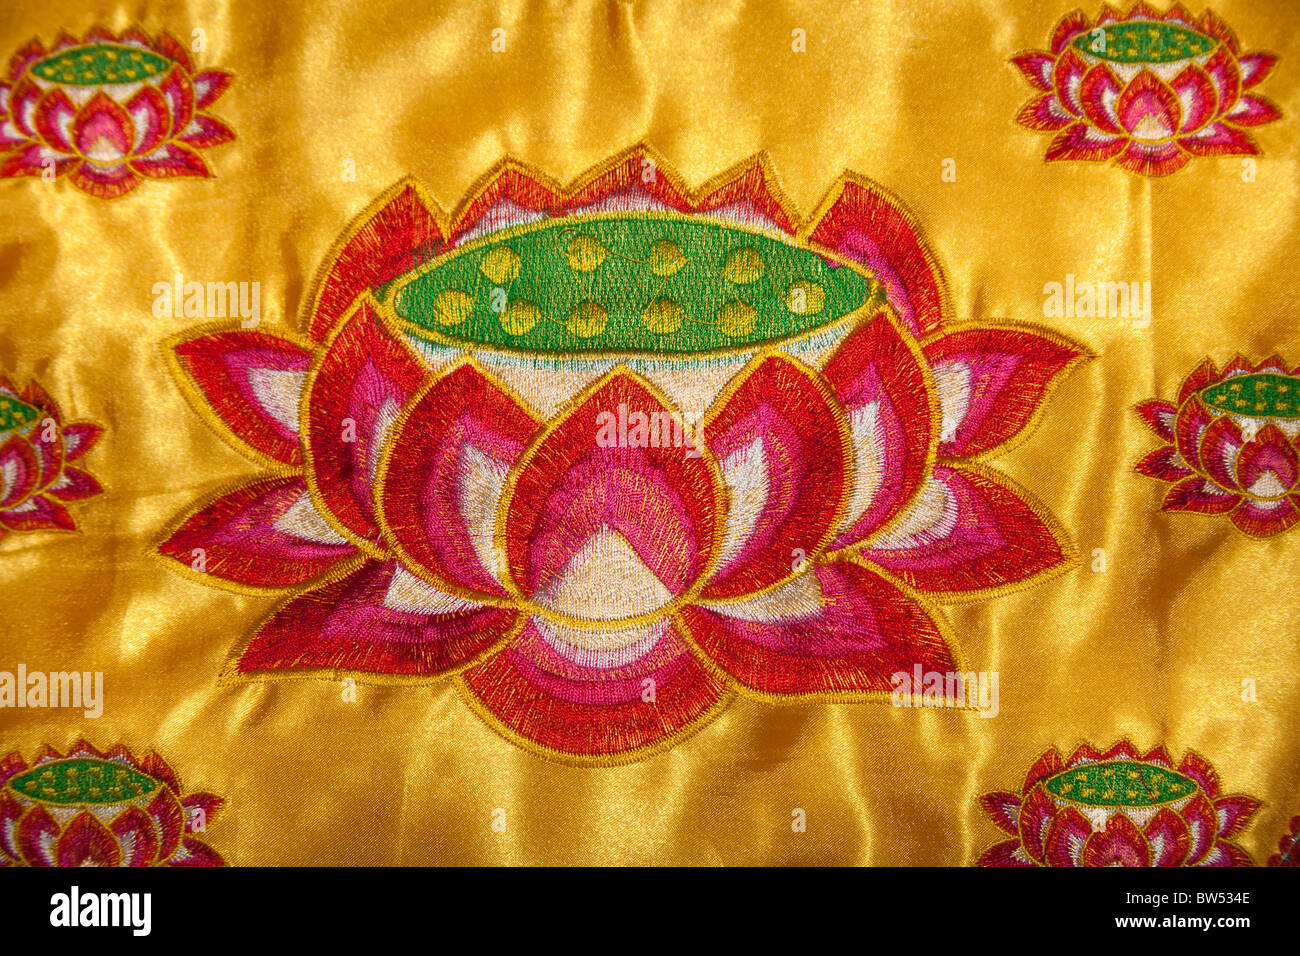 Colourful Chinese Embroidered Silk Prayer Stool Of Lotus Flower